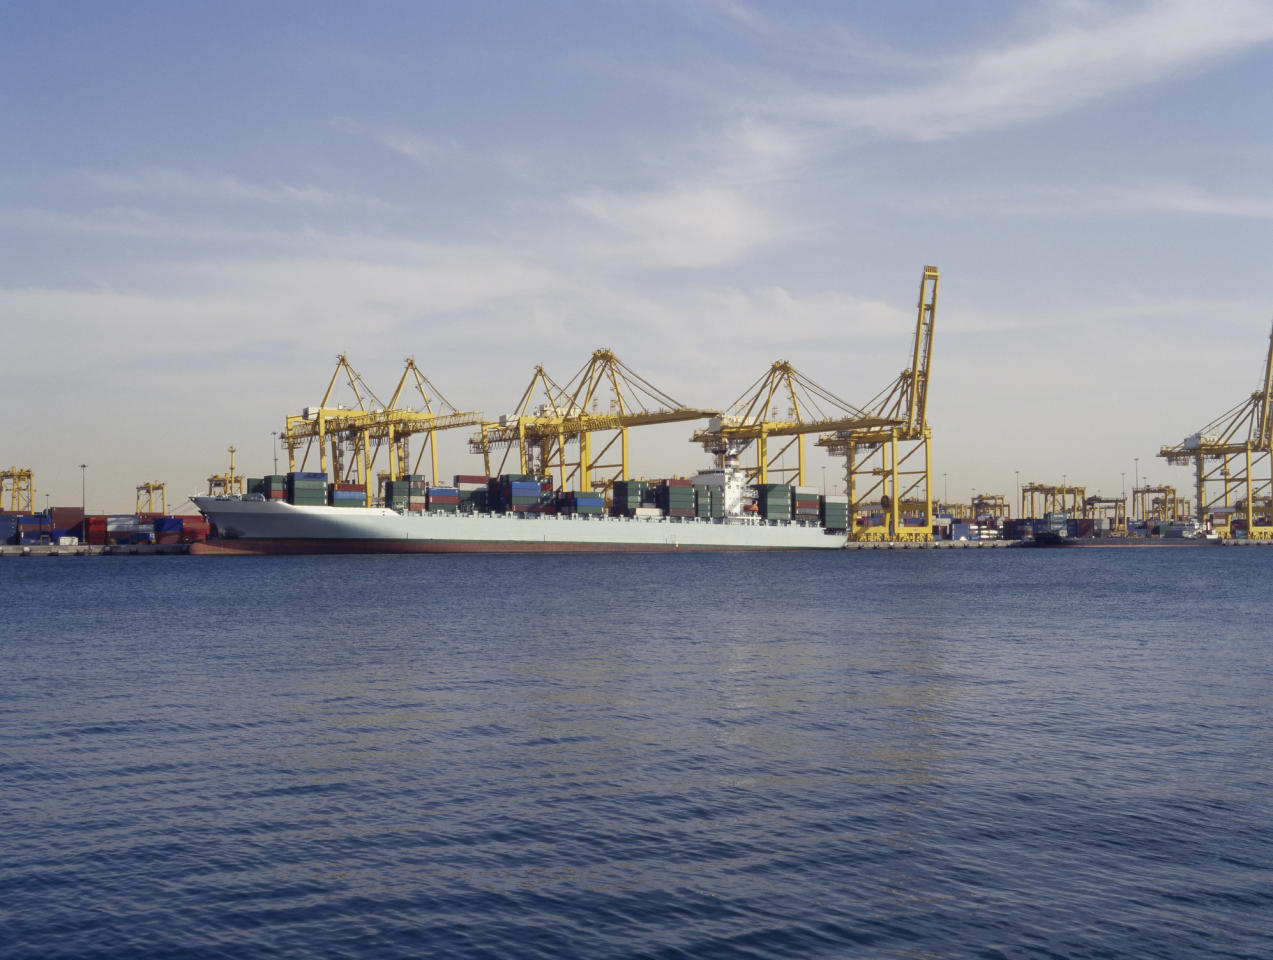 <p>Open free zone companies in all states attached to seaports. (Give facilities like free duty on imports and no strike zone </p>